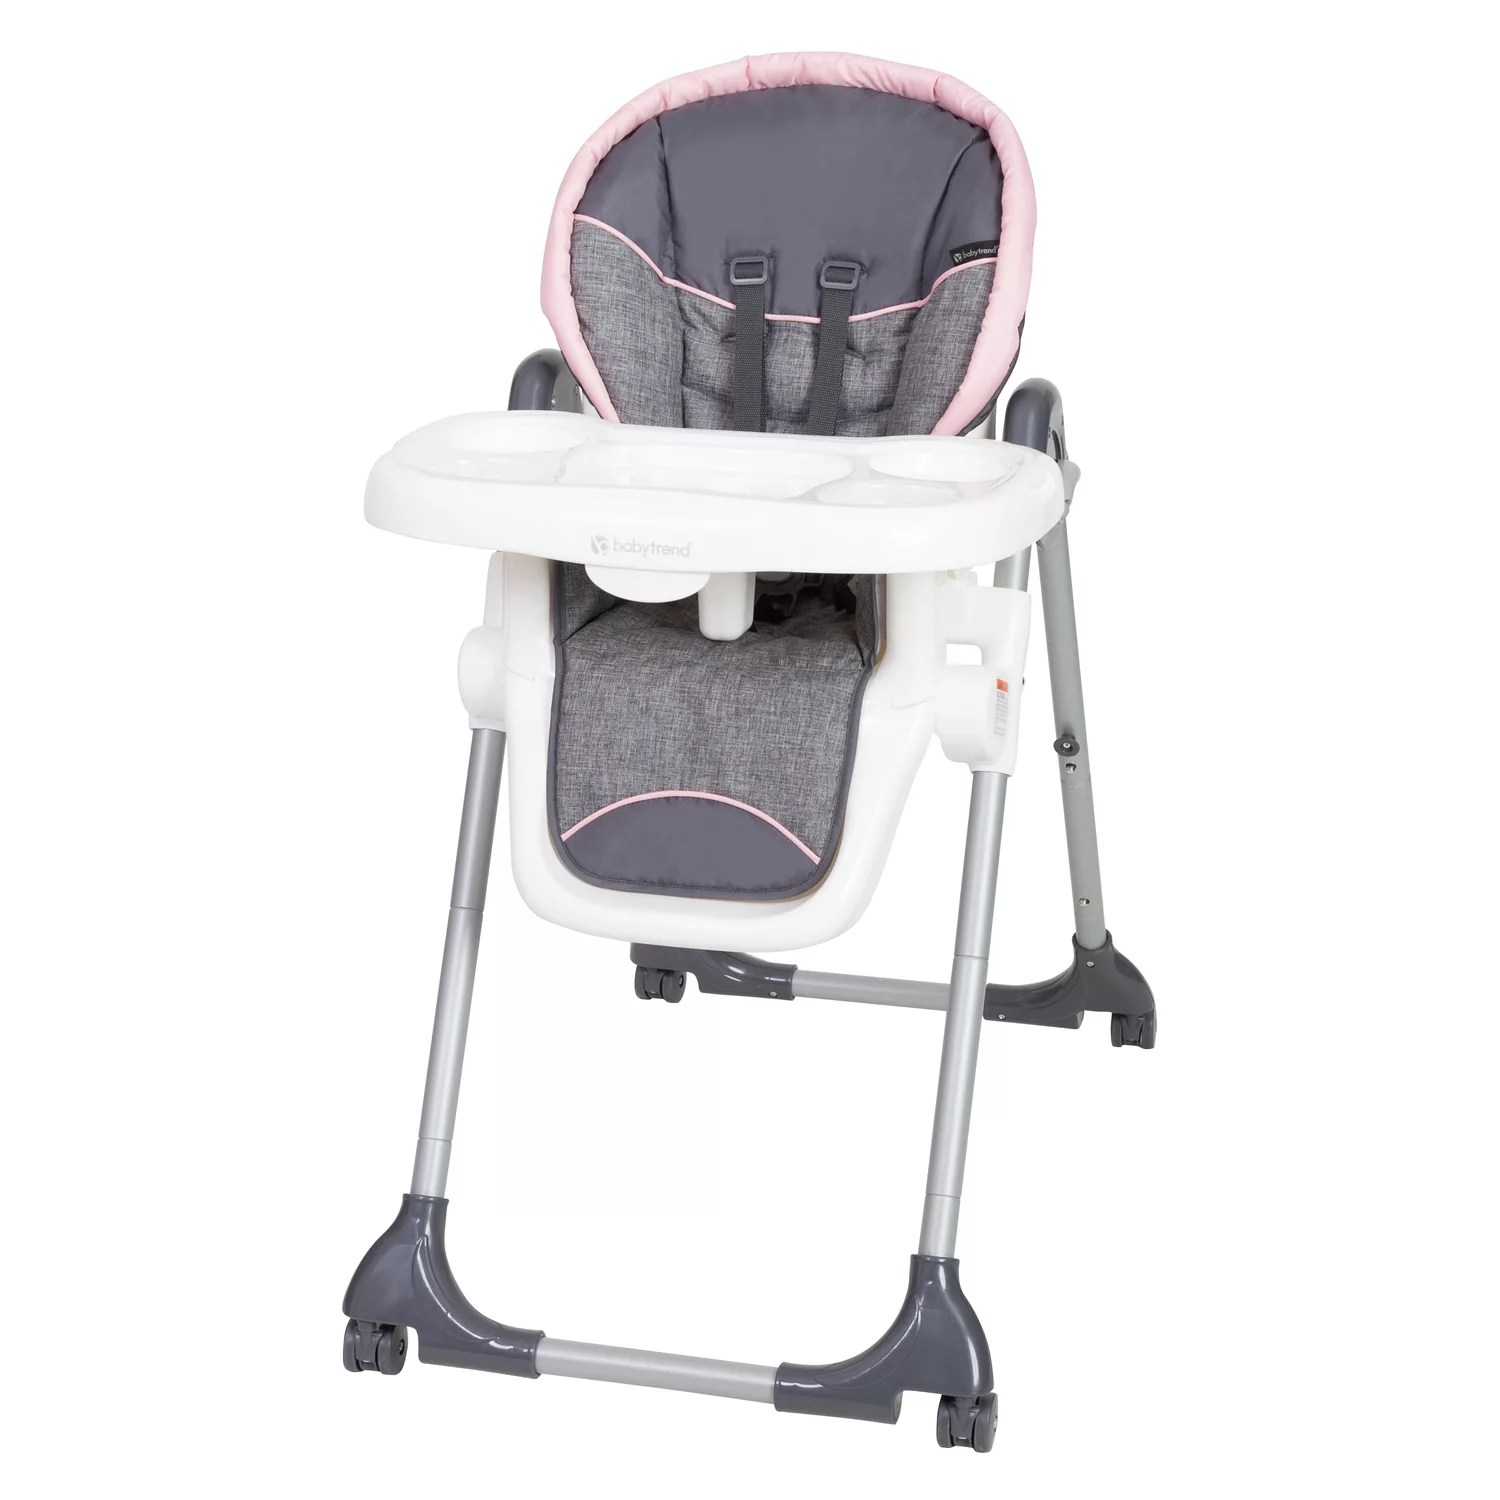 eddie bauer multi stage high chair twin sleep chairs baby kohl s trend dine time 3 in 1